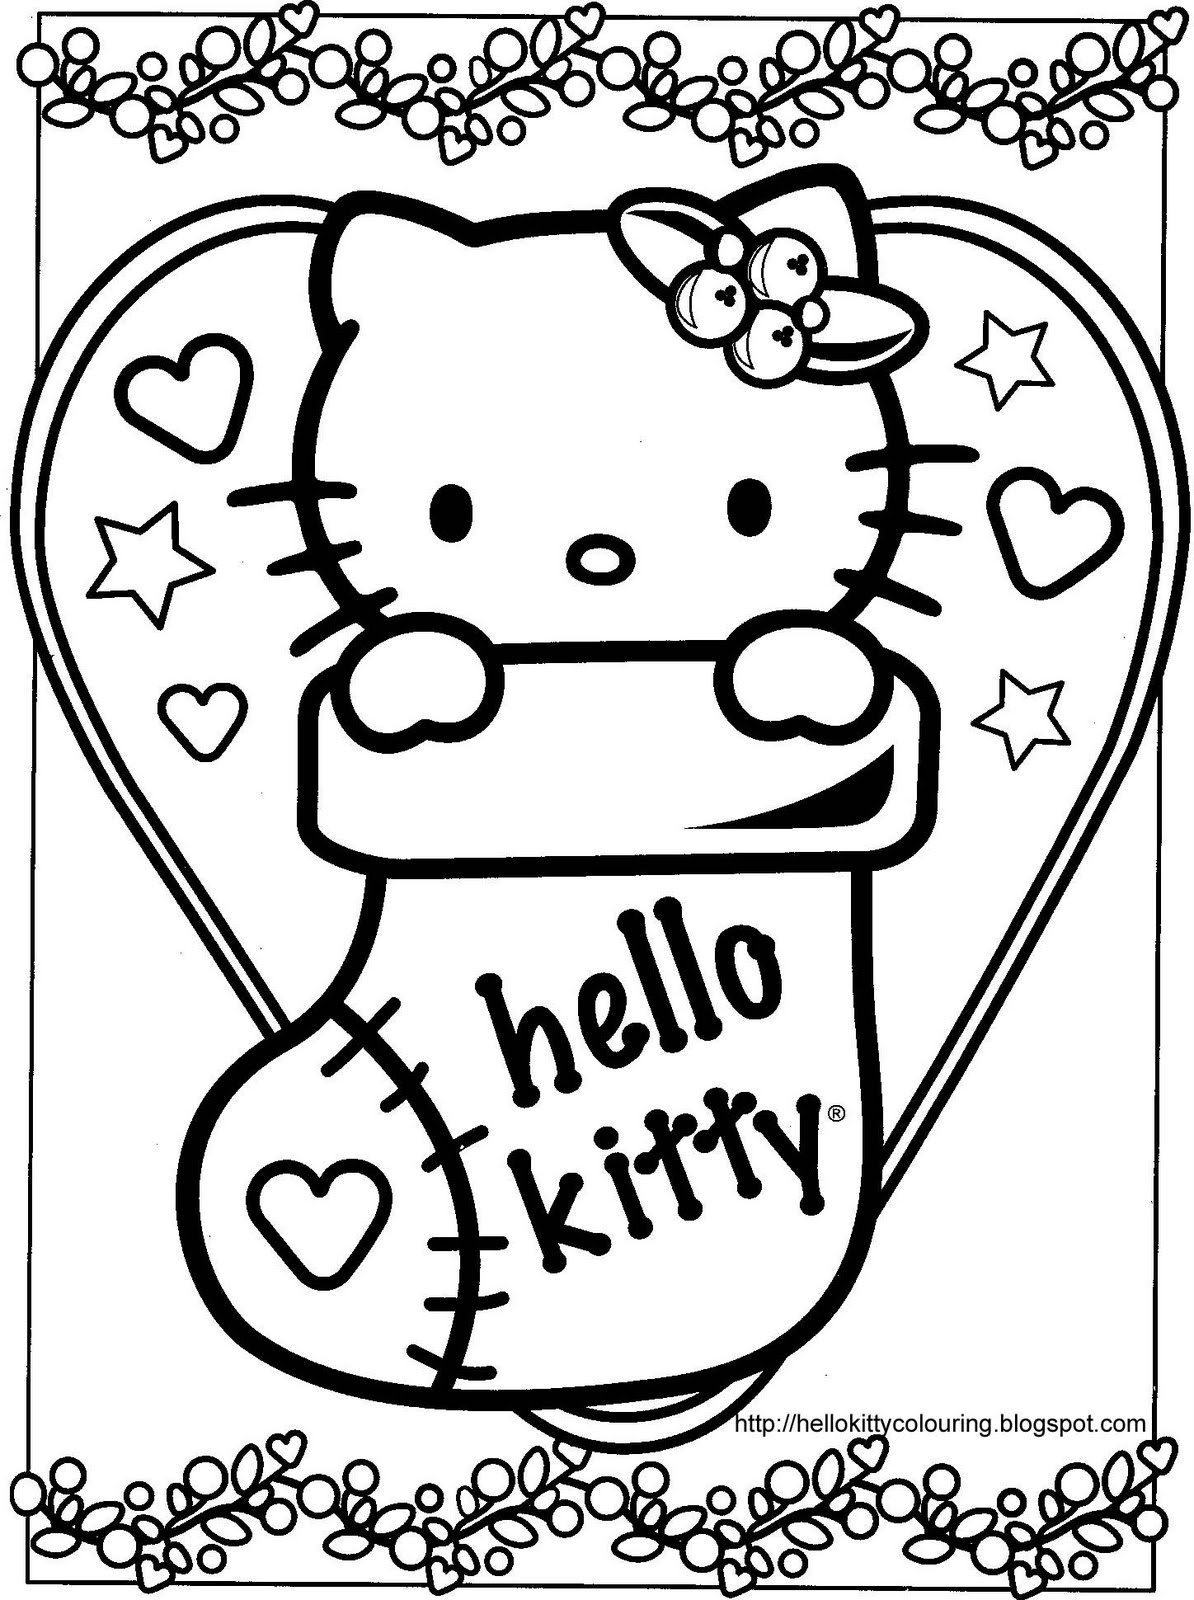 christmas coloring pages hello kitty hello kitty christmas coloring pages 1 hello kitty forever hello pages christmas coloring kitty